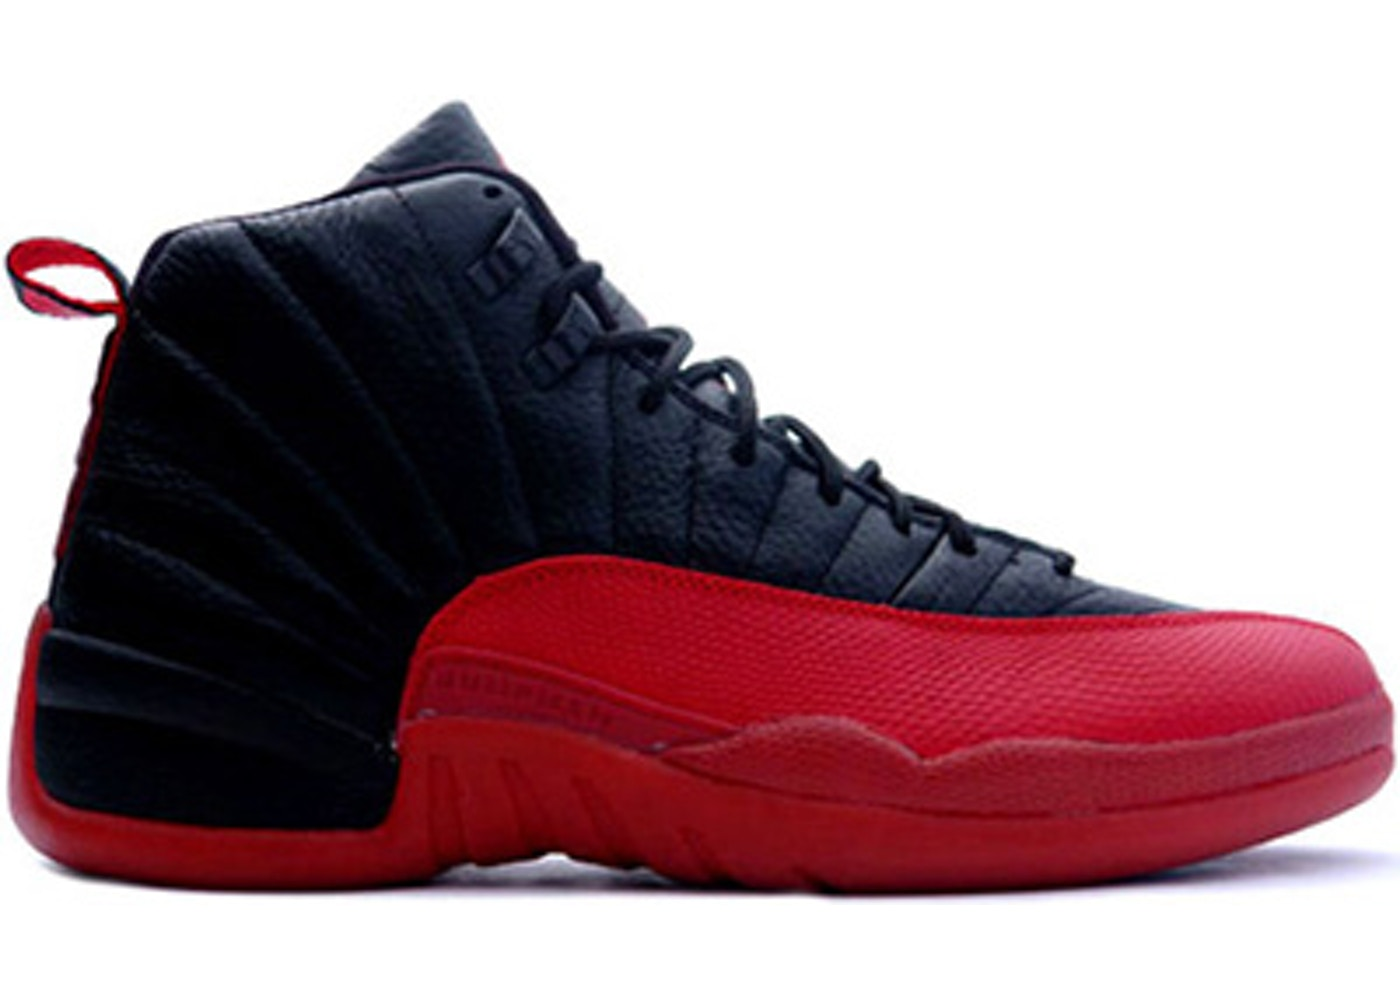 finest selection 1be27 f8f2d Jordan 12 Retro Flu Game (2003) - 136001-063